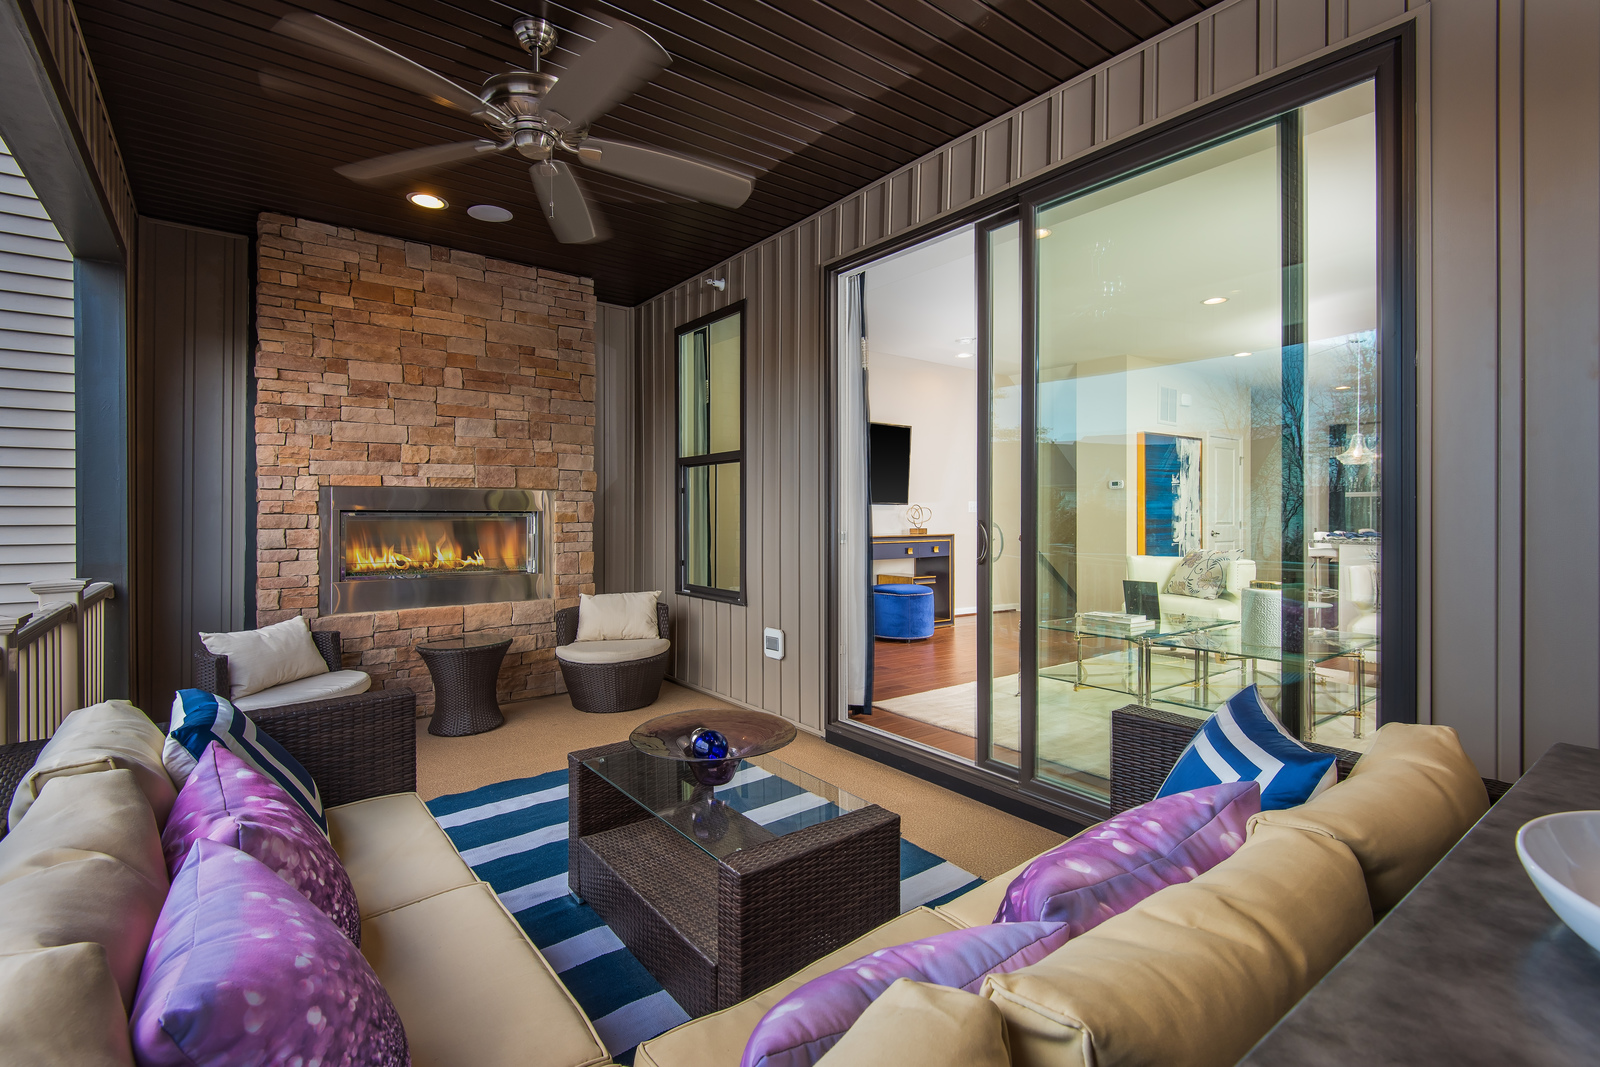 Enjoy outdoor living right where you want it - on the main living level! Our SkyLanai at Metro Row is a covered porch with all the privacy you desire and offers outdoor entertaining options all year long.